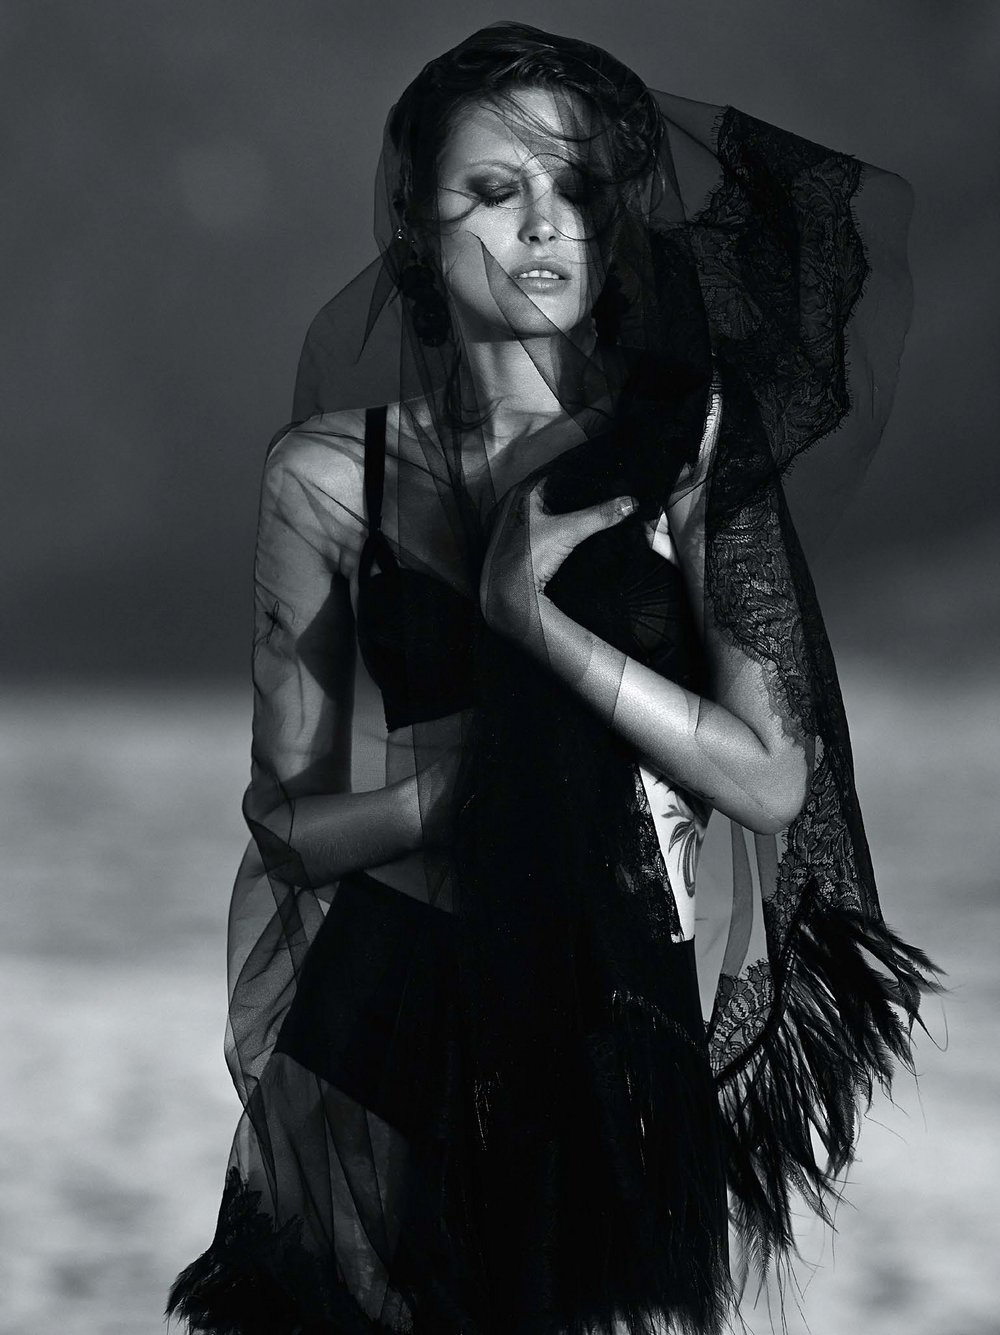 Catherine-McNeil-by-Gilles-Bensimon-for-Vogue-Australia-October-2014-13.jpg